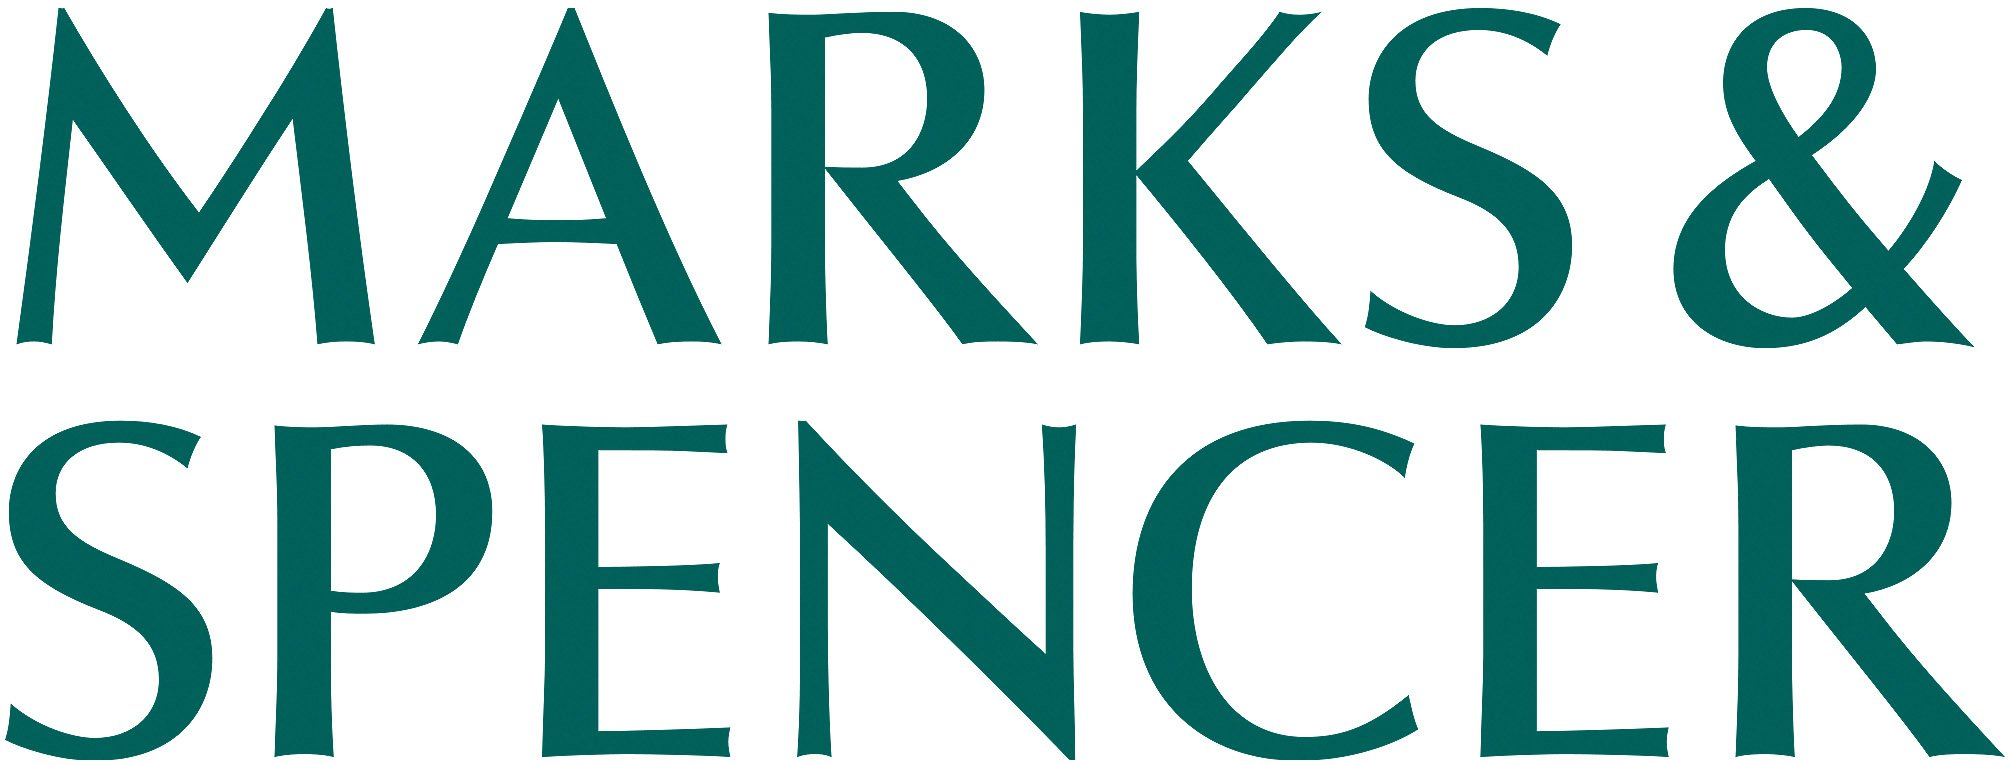 history and background marks and spencer History (8,438) physics (2,682) religious studies (philosophy & ethics) (5,878)  types of businesses - marks and spencer is a (plc) public limited company.